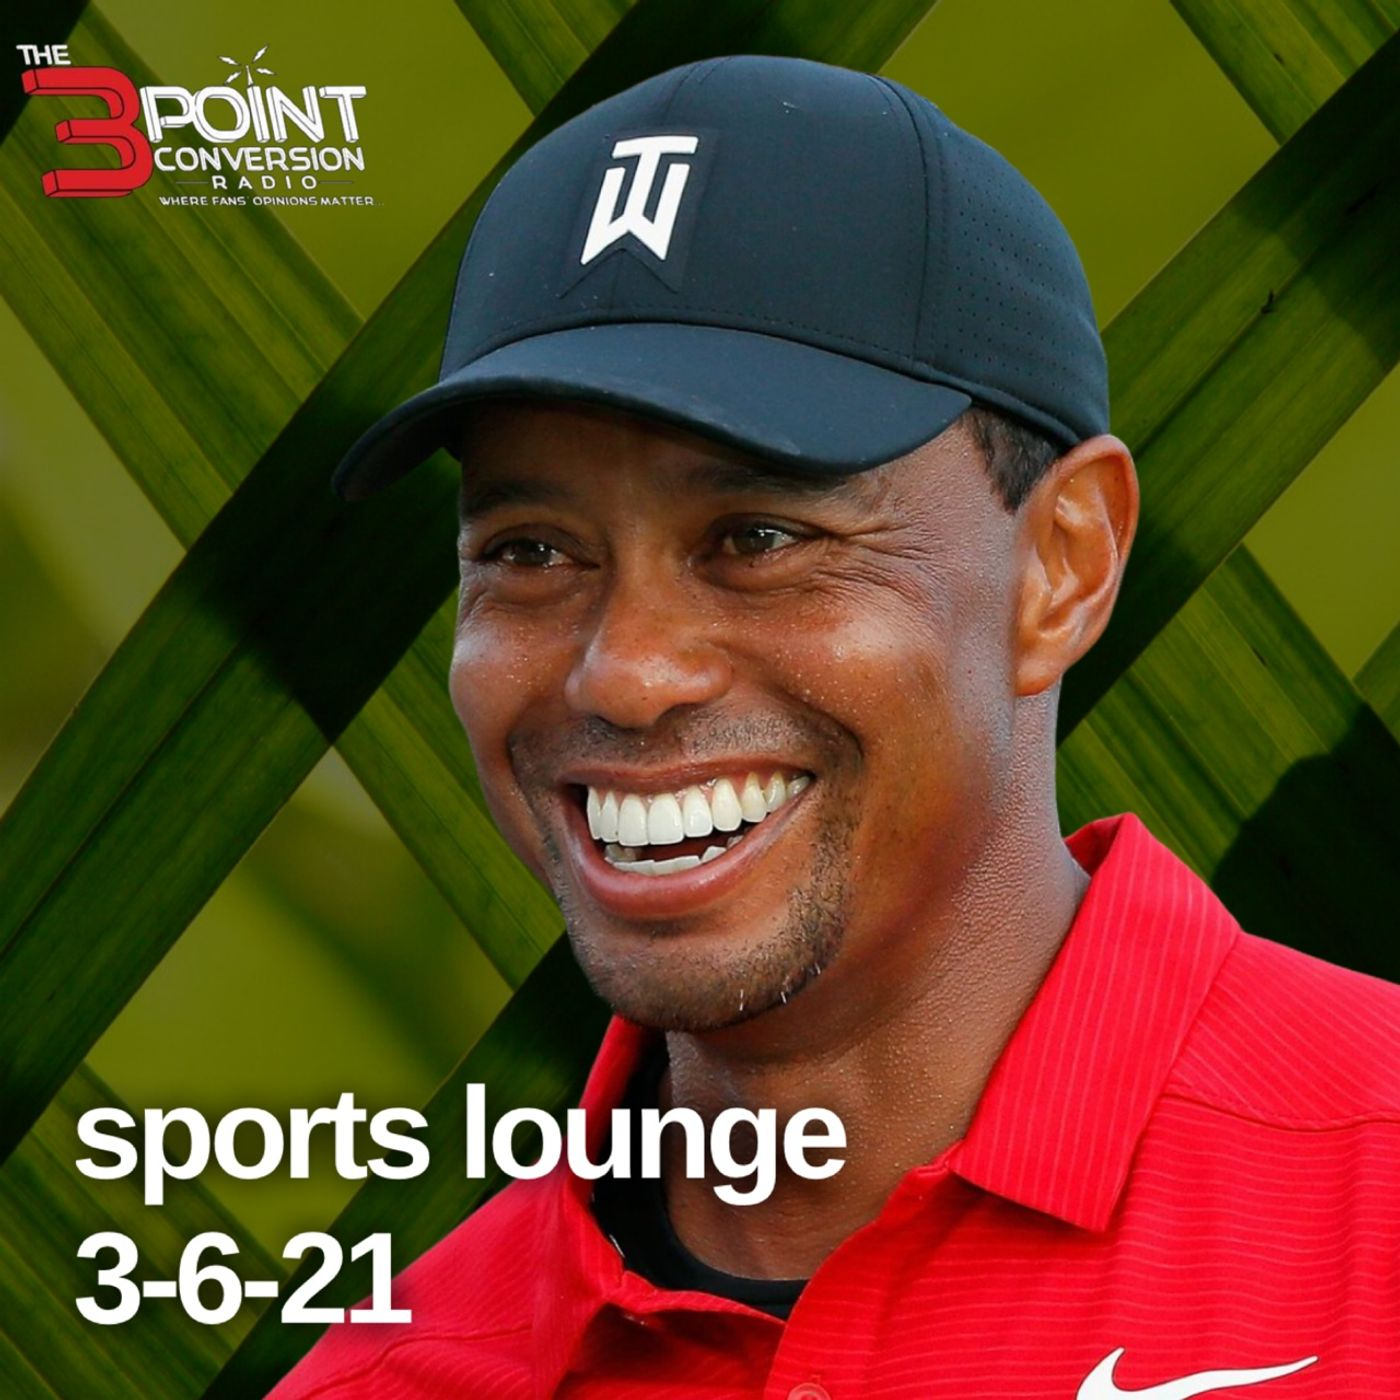 The 3 Point Conversion Sports Lounge - NBA All-Star Weekend, Tiger Woods Legacy, BattleGrounds, Mid-Season Awards